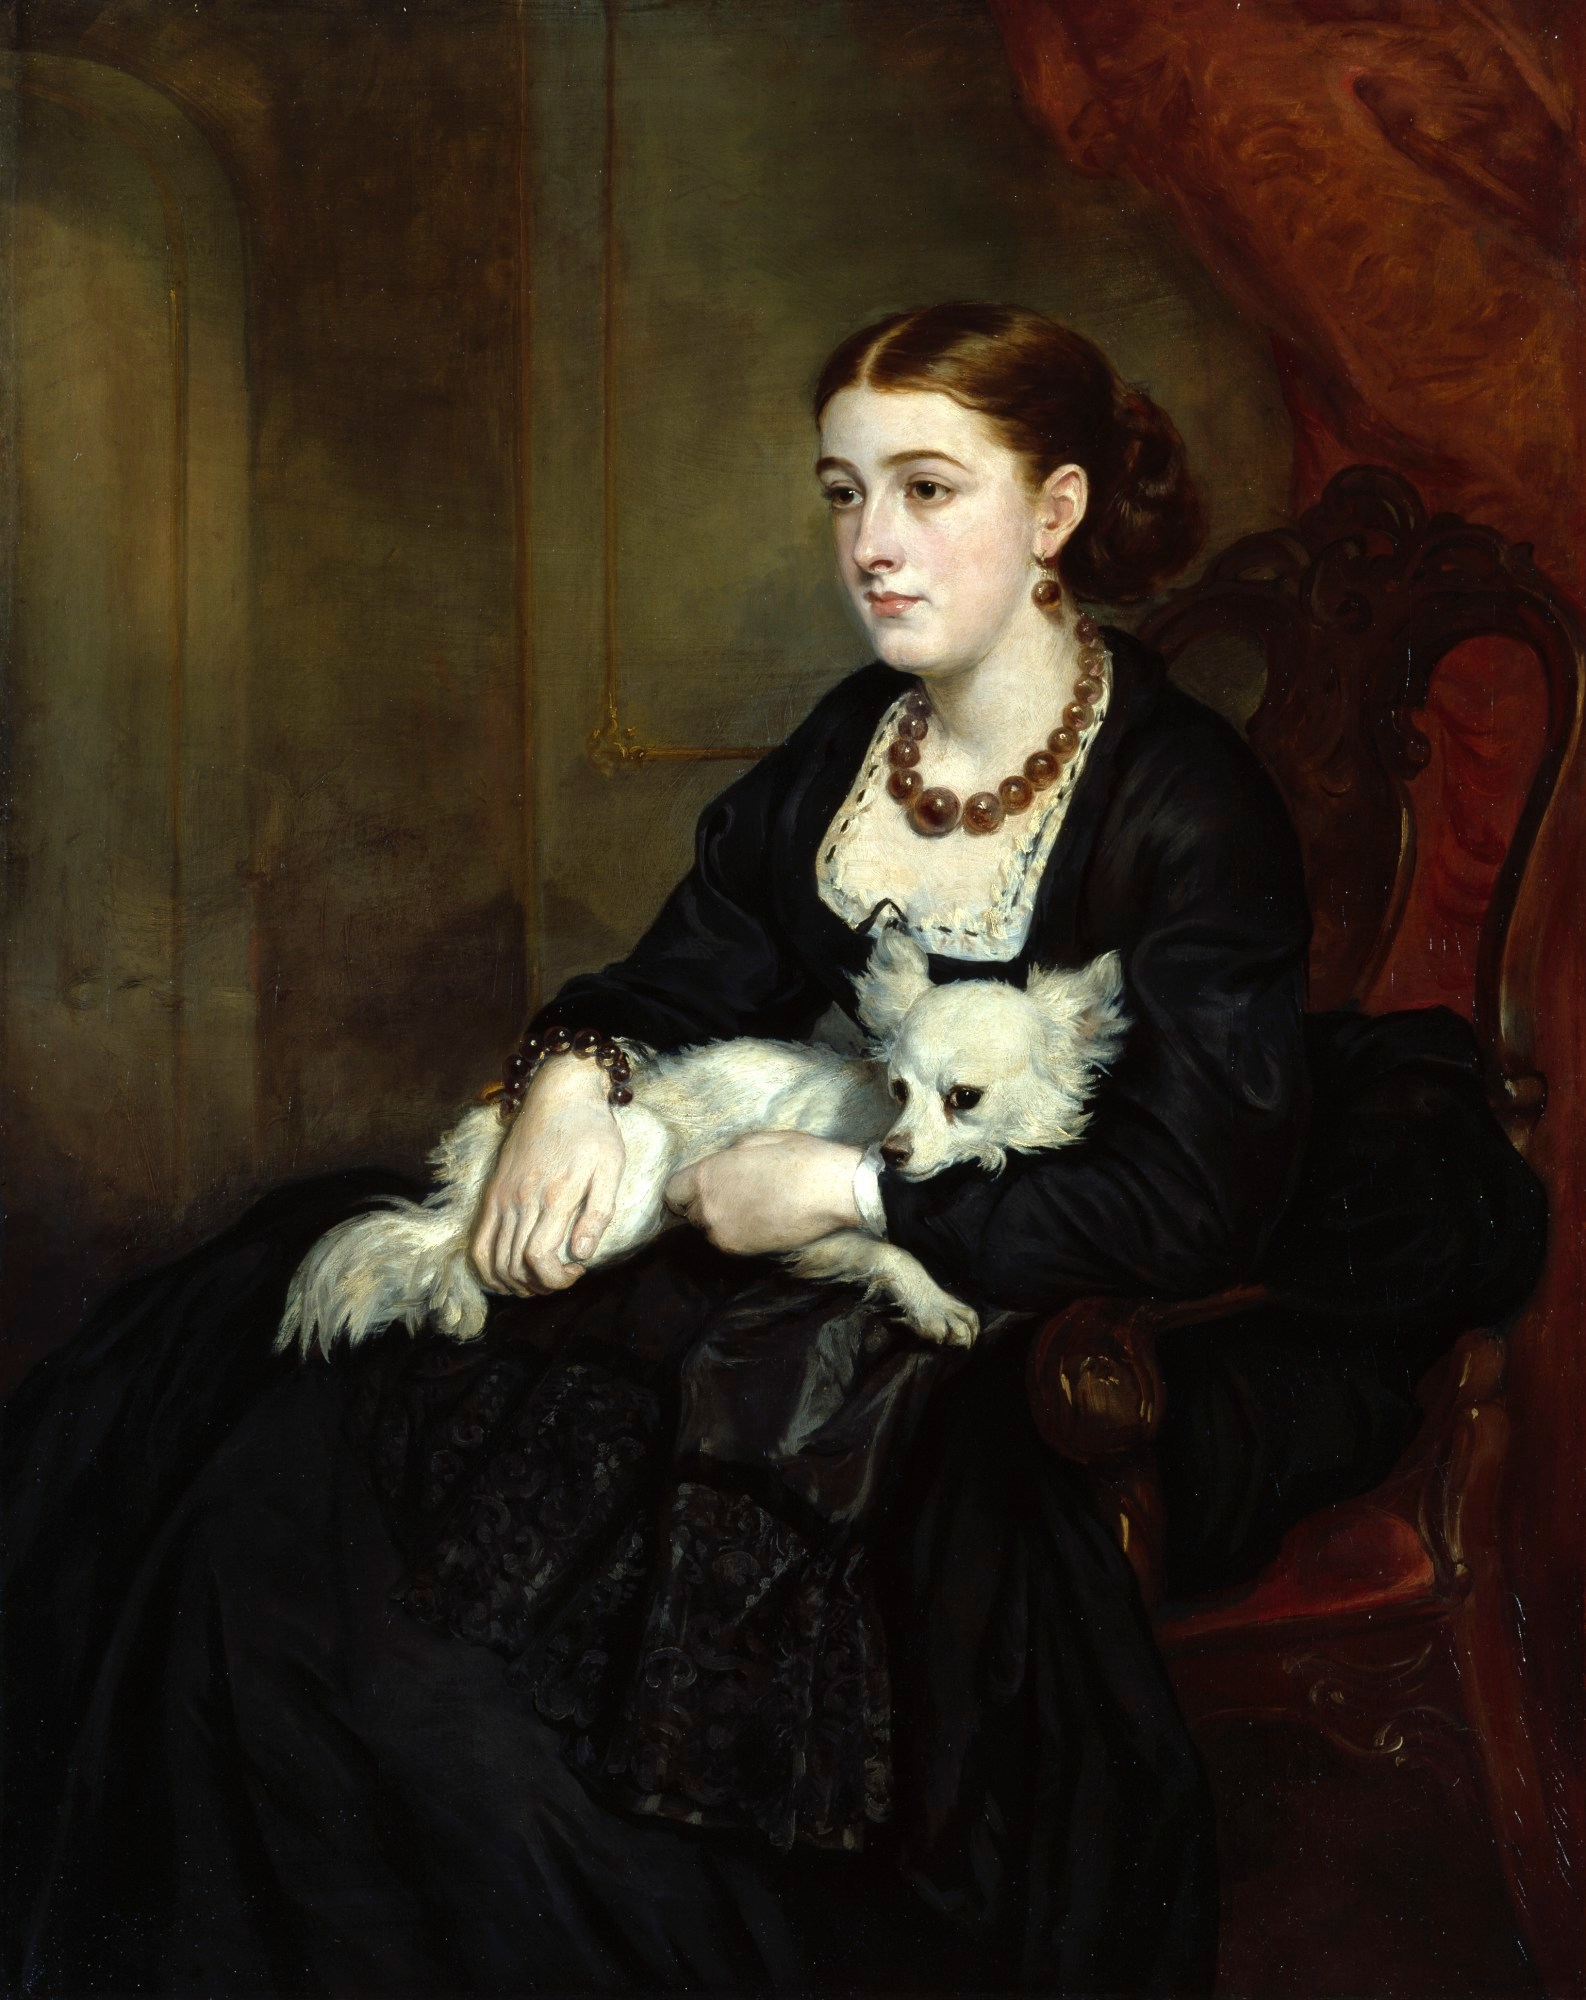 Sir Francis Grant, Portrait of Miss Grant, the Artist's Daughter